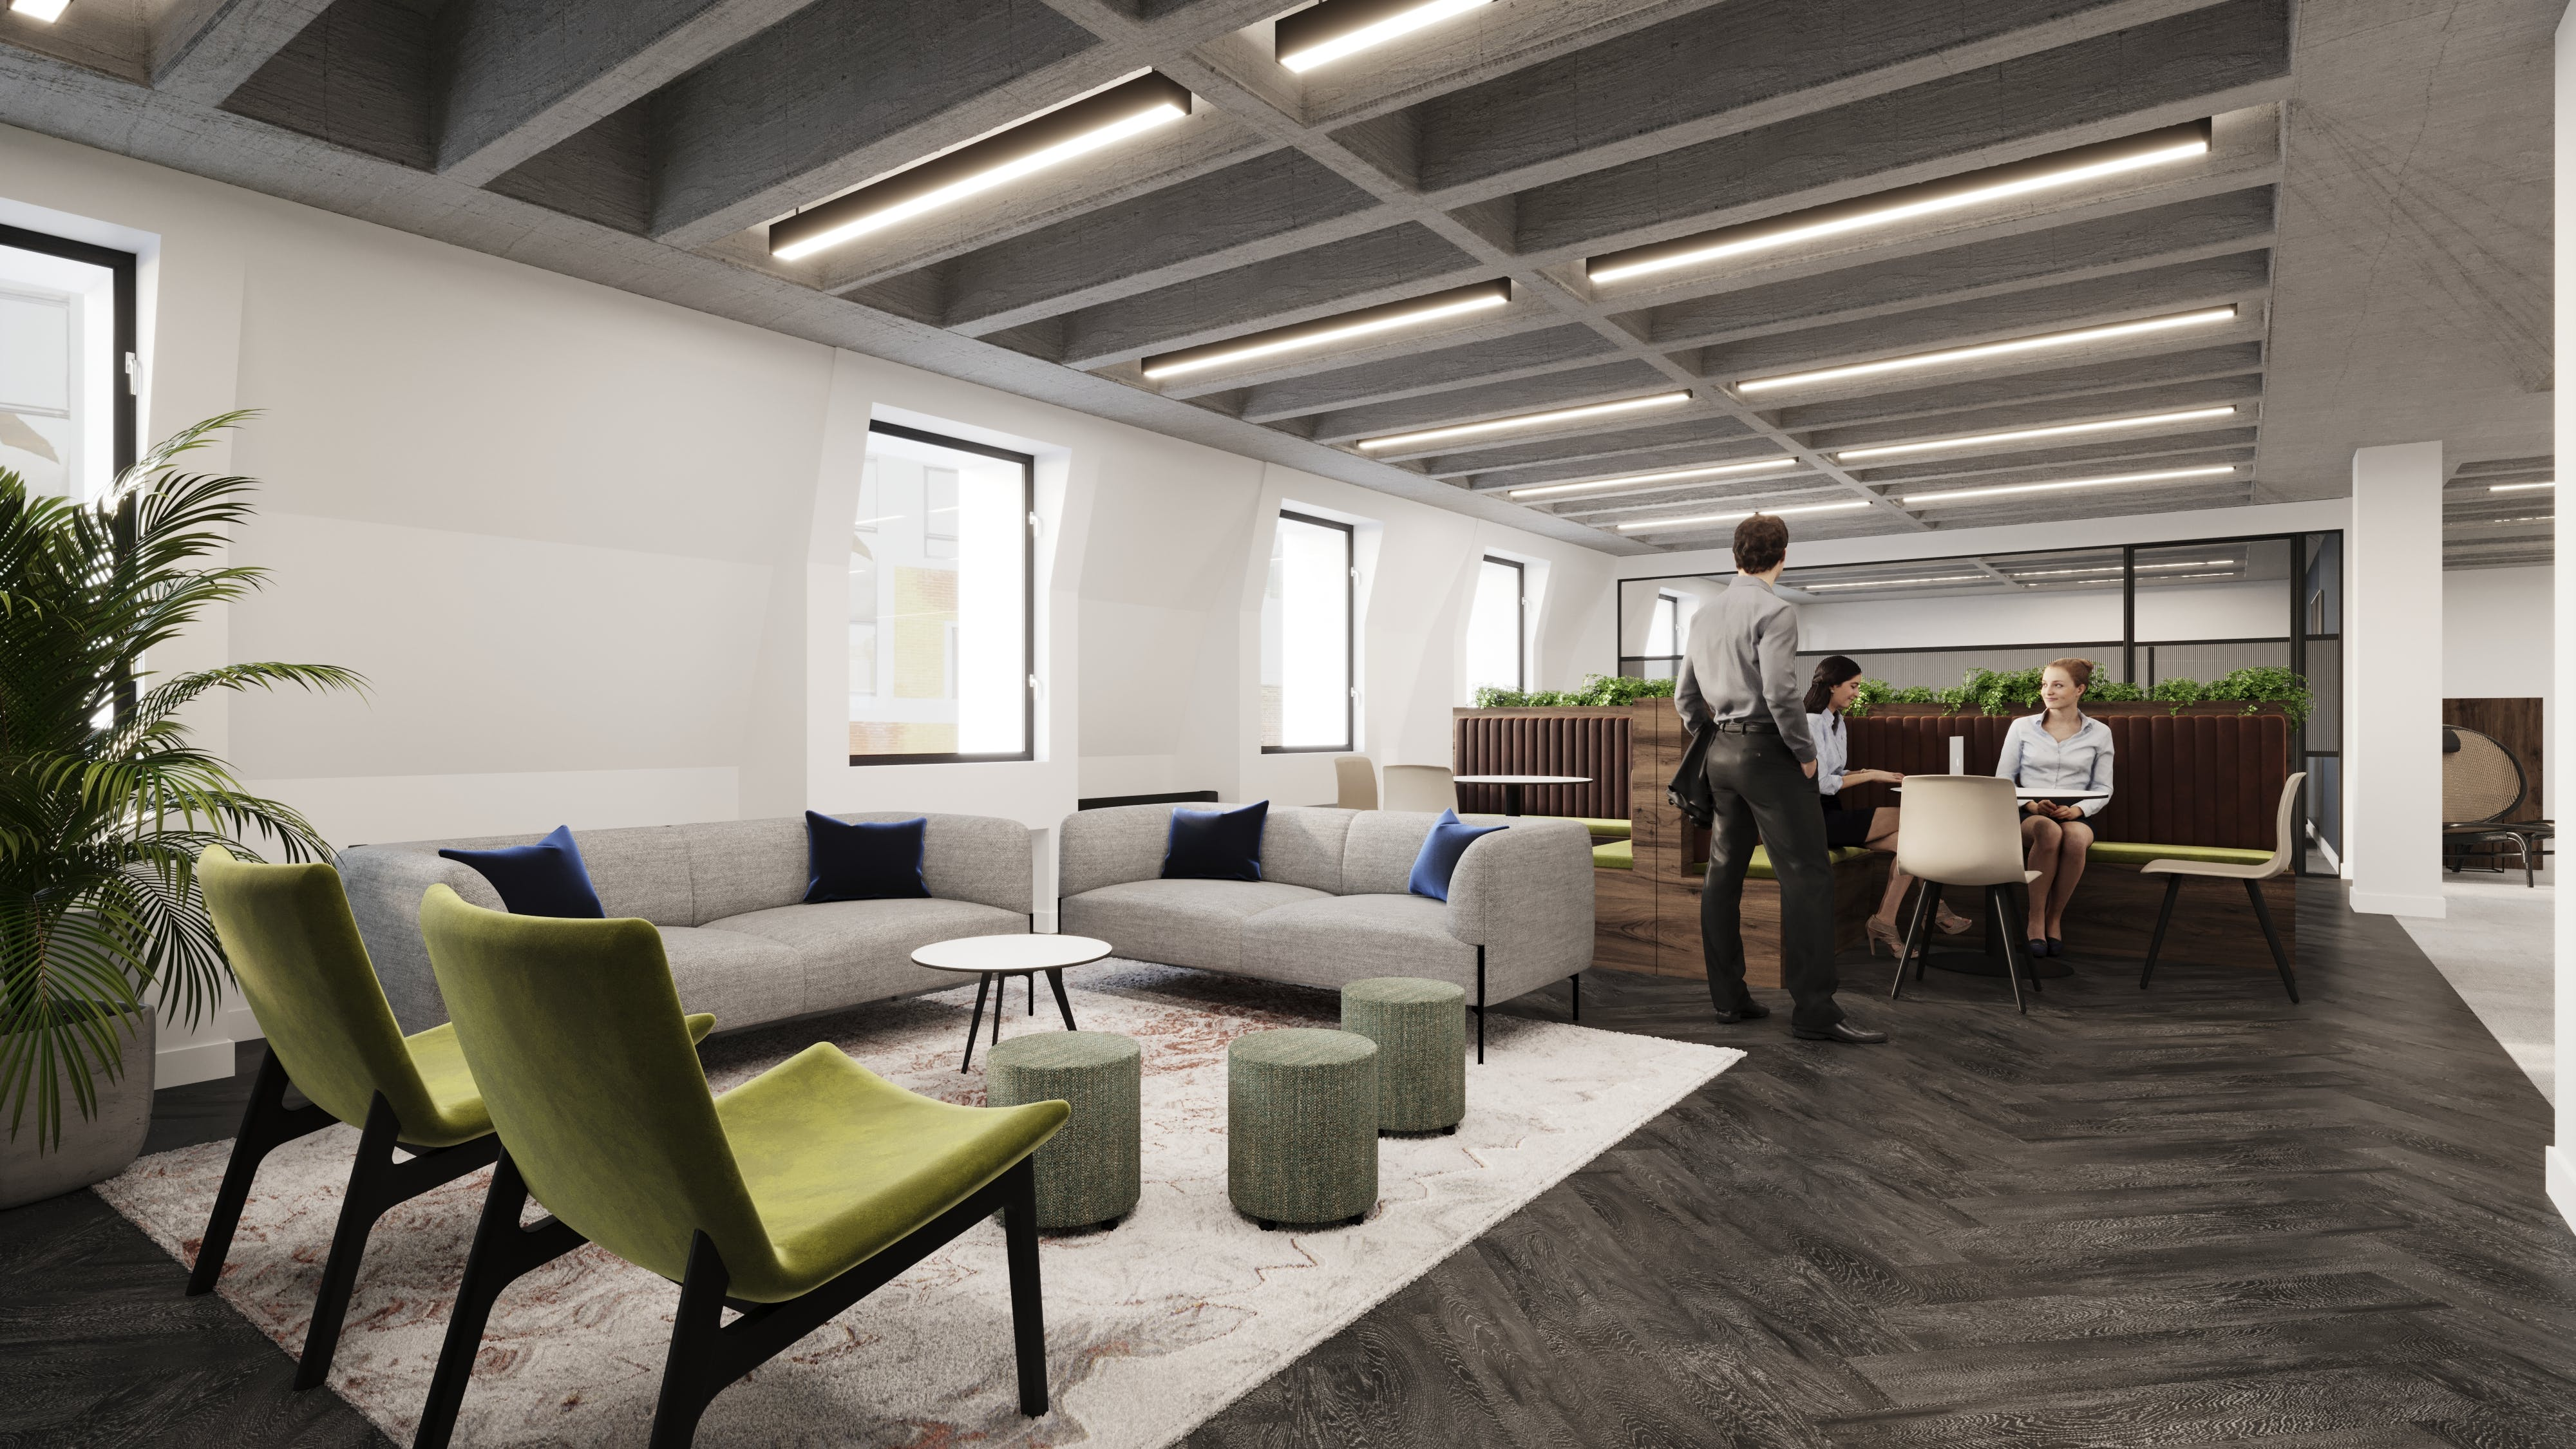 51-53 Great Marlborough Street, London, Offices To Let - GMS_Reception.jpg